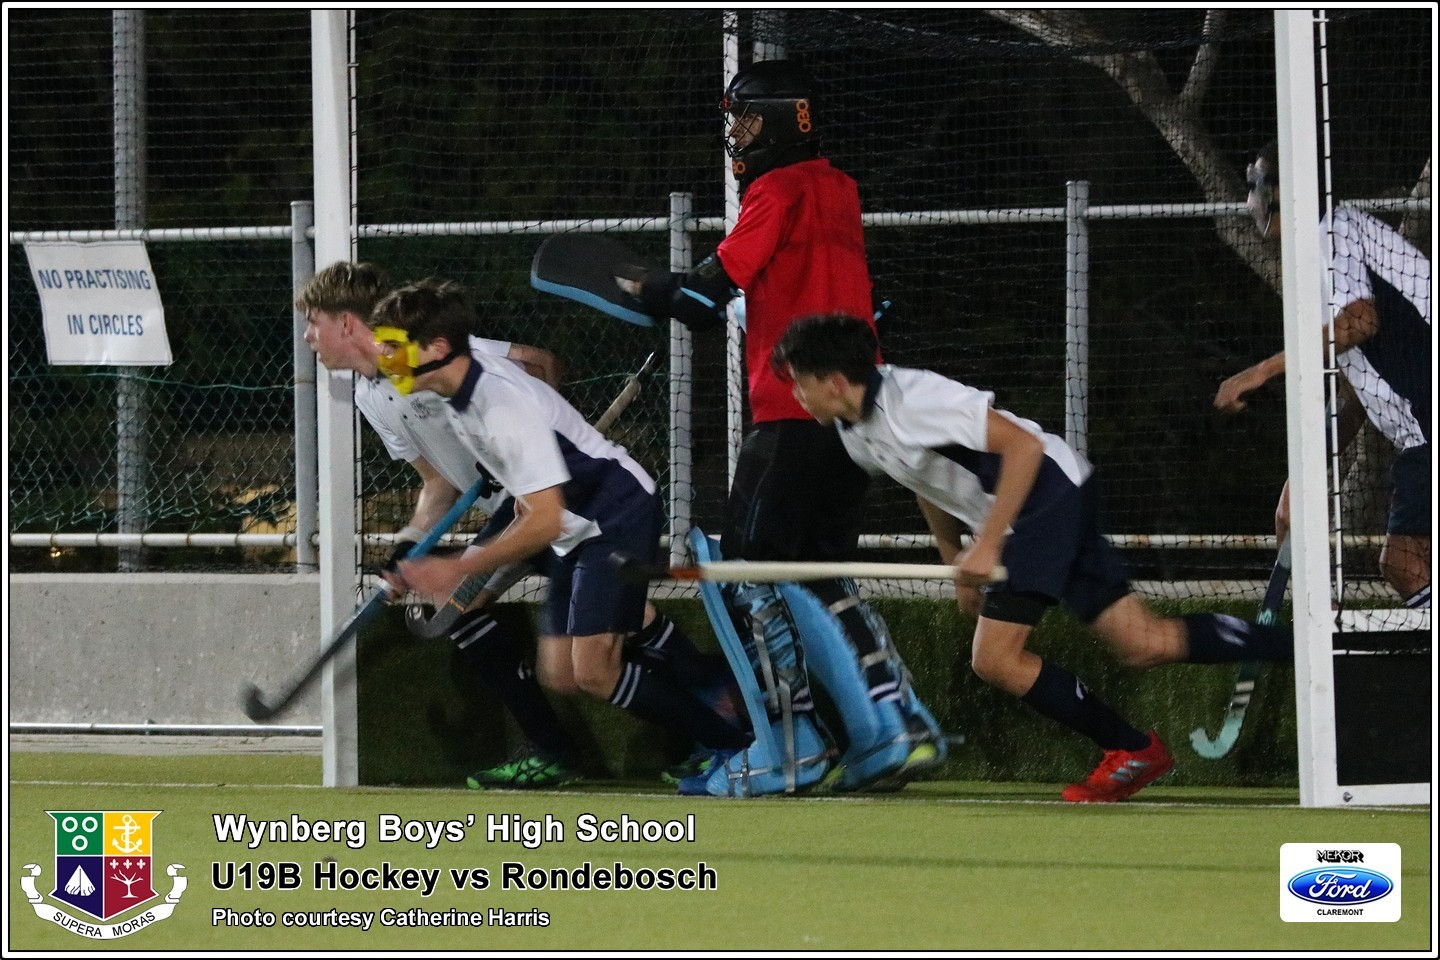 U19B vs Rondebosch, Friday 3 August 2018